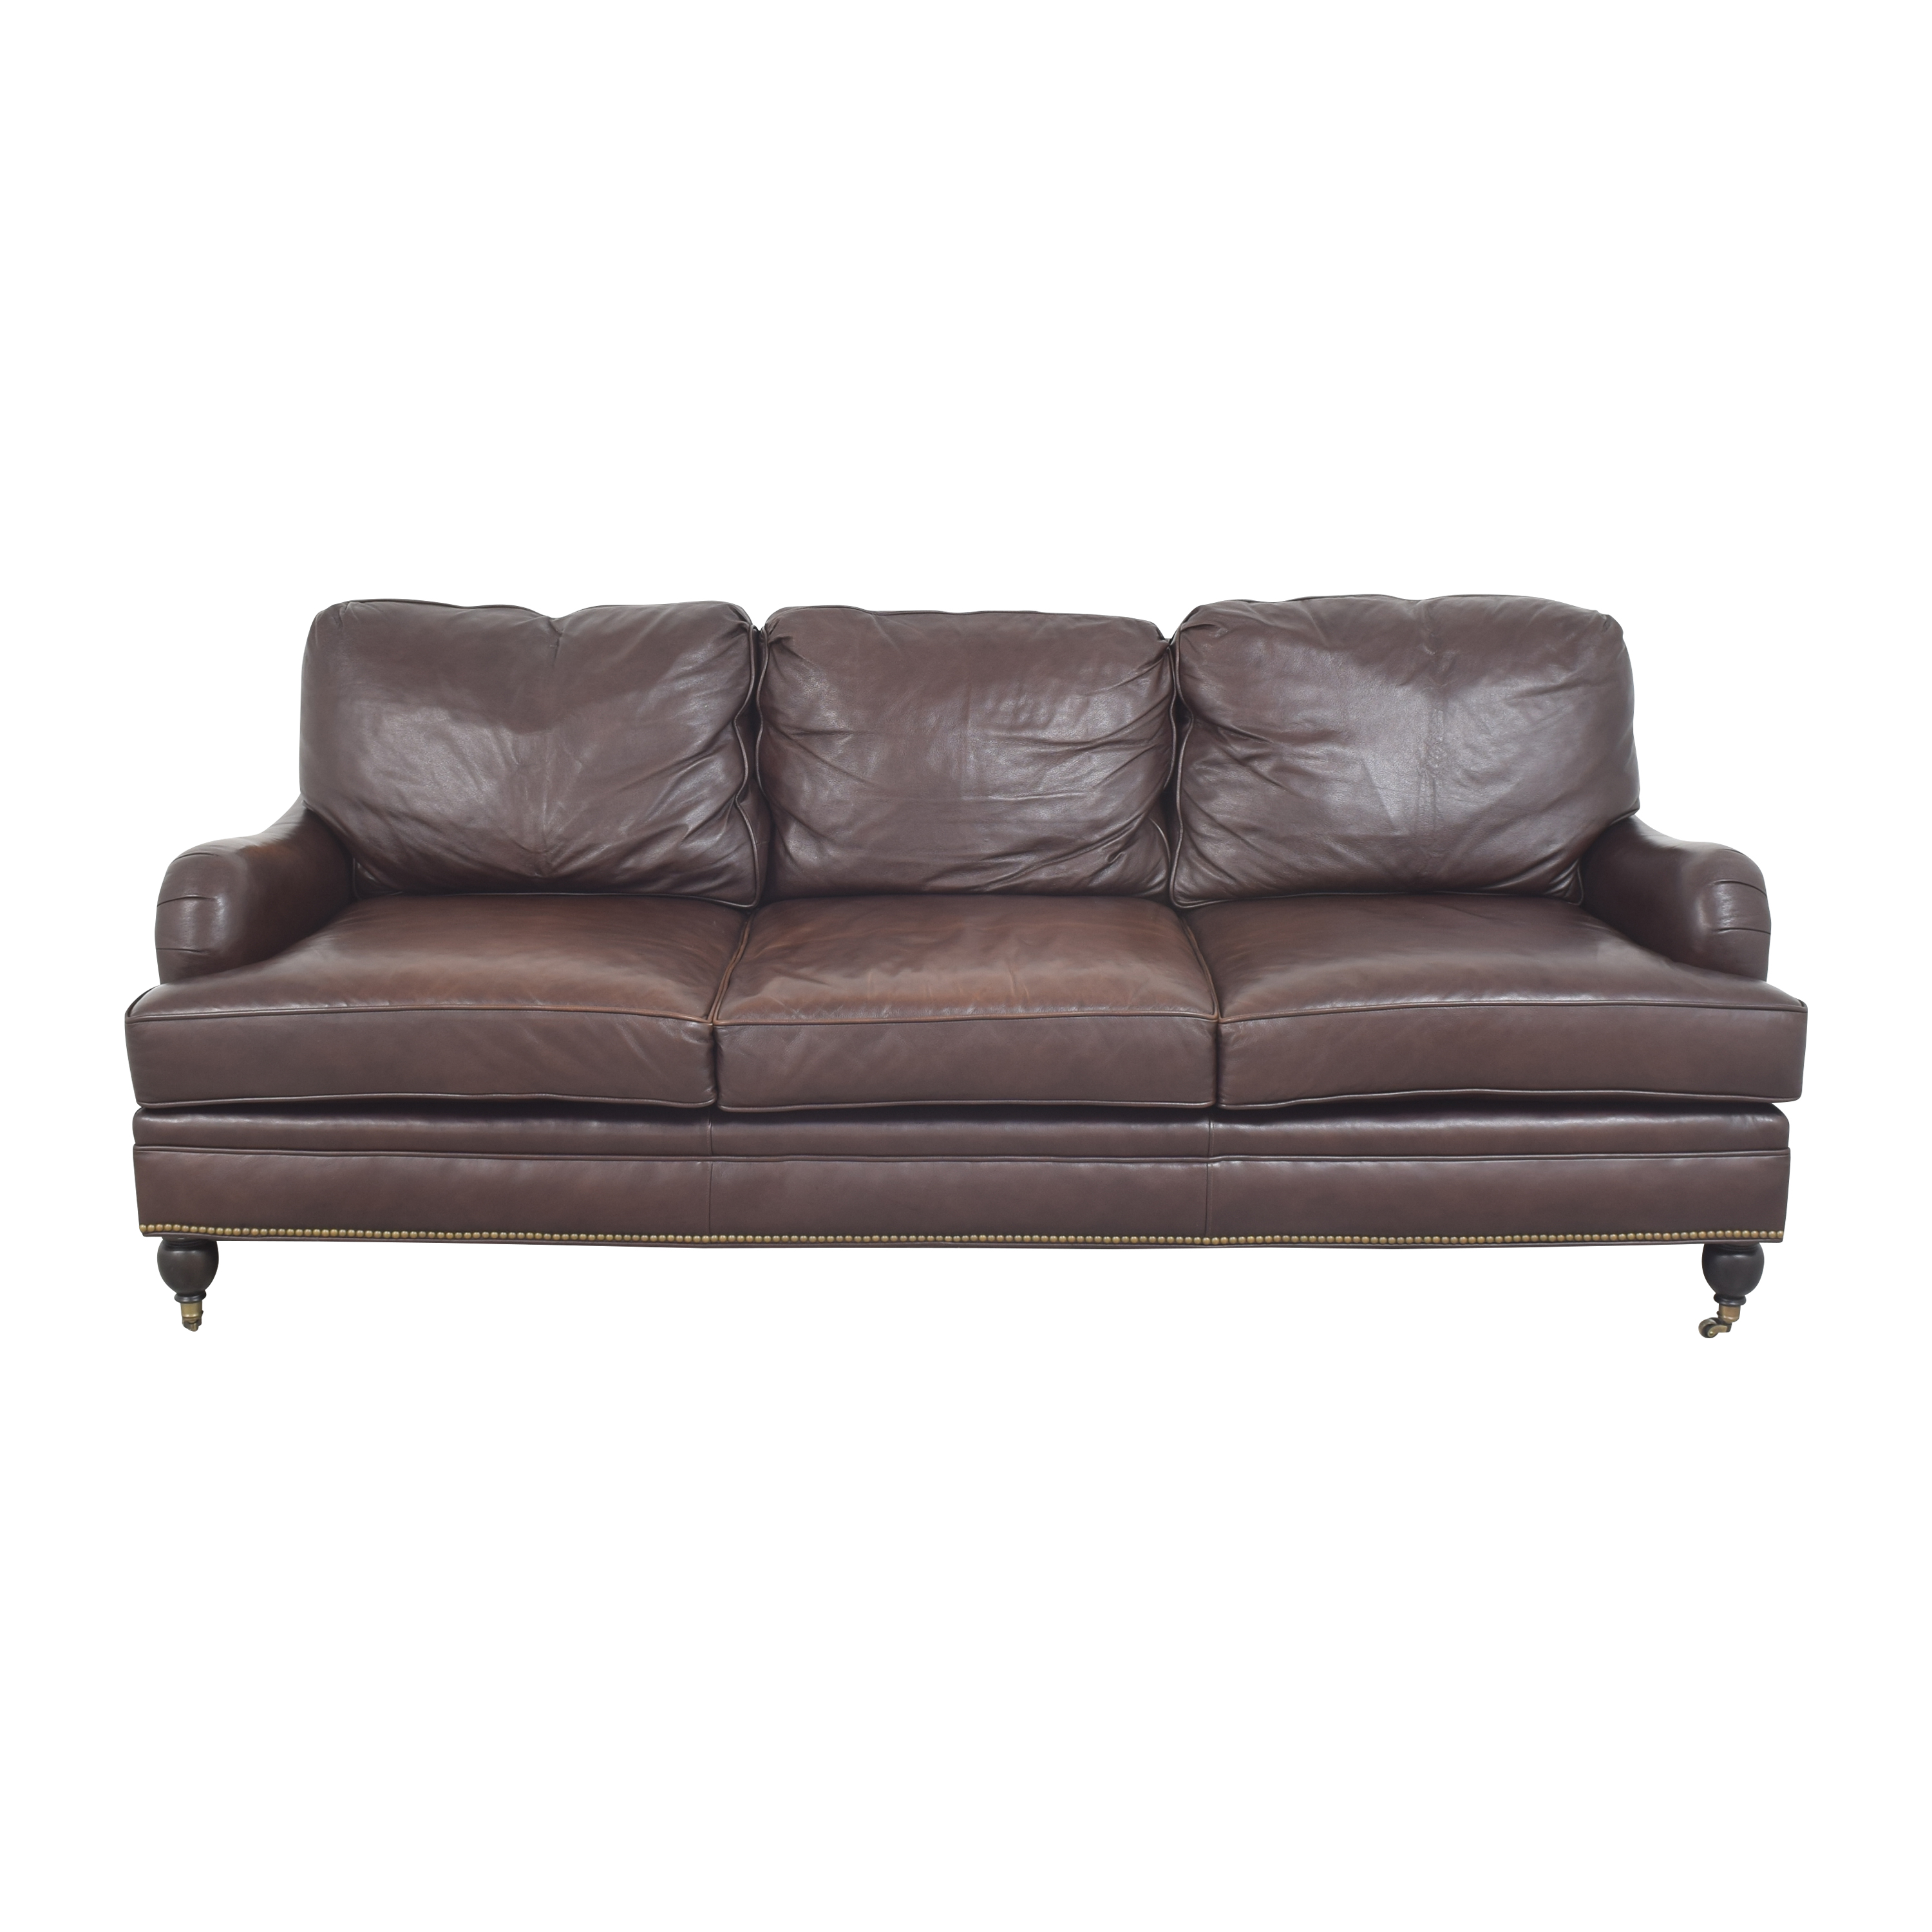 Century Furniture Century Furniture Roll Arm Sofa ct